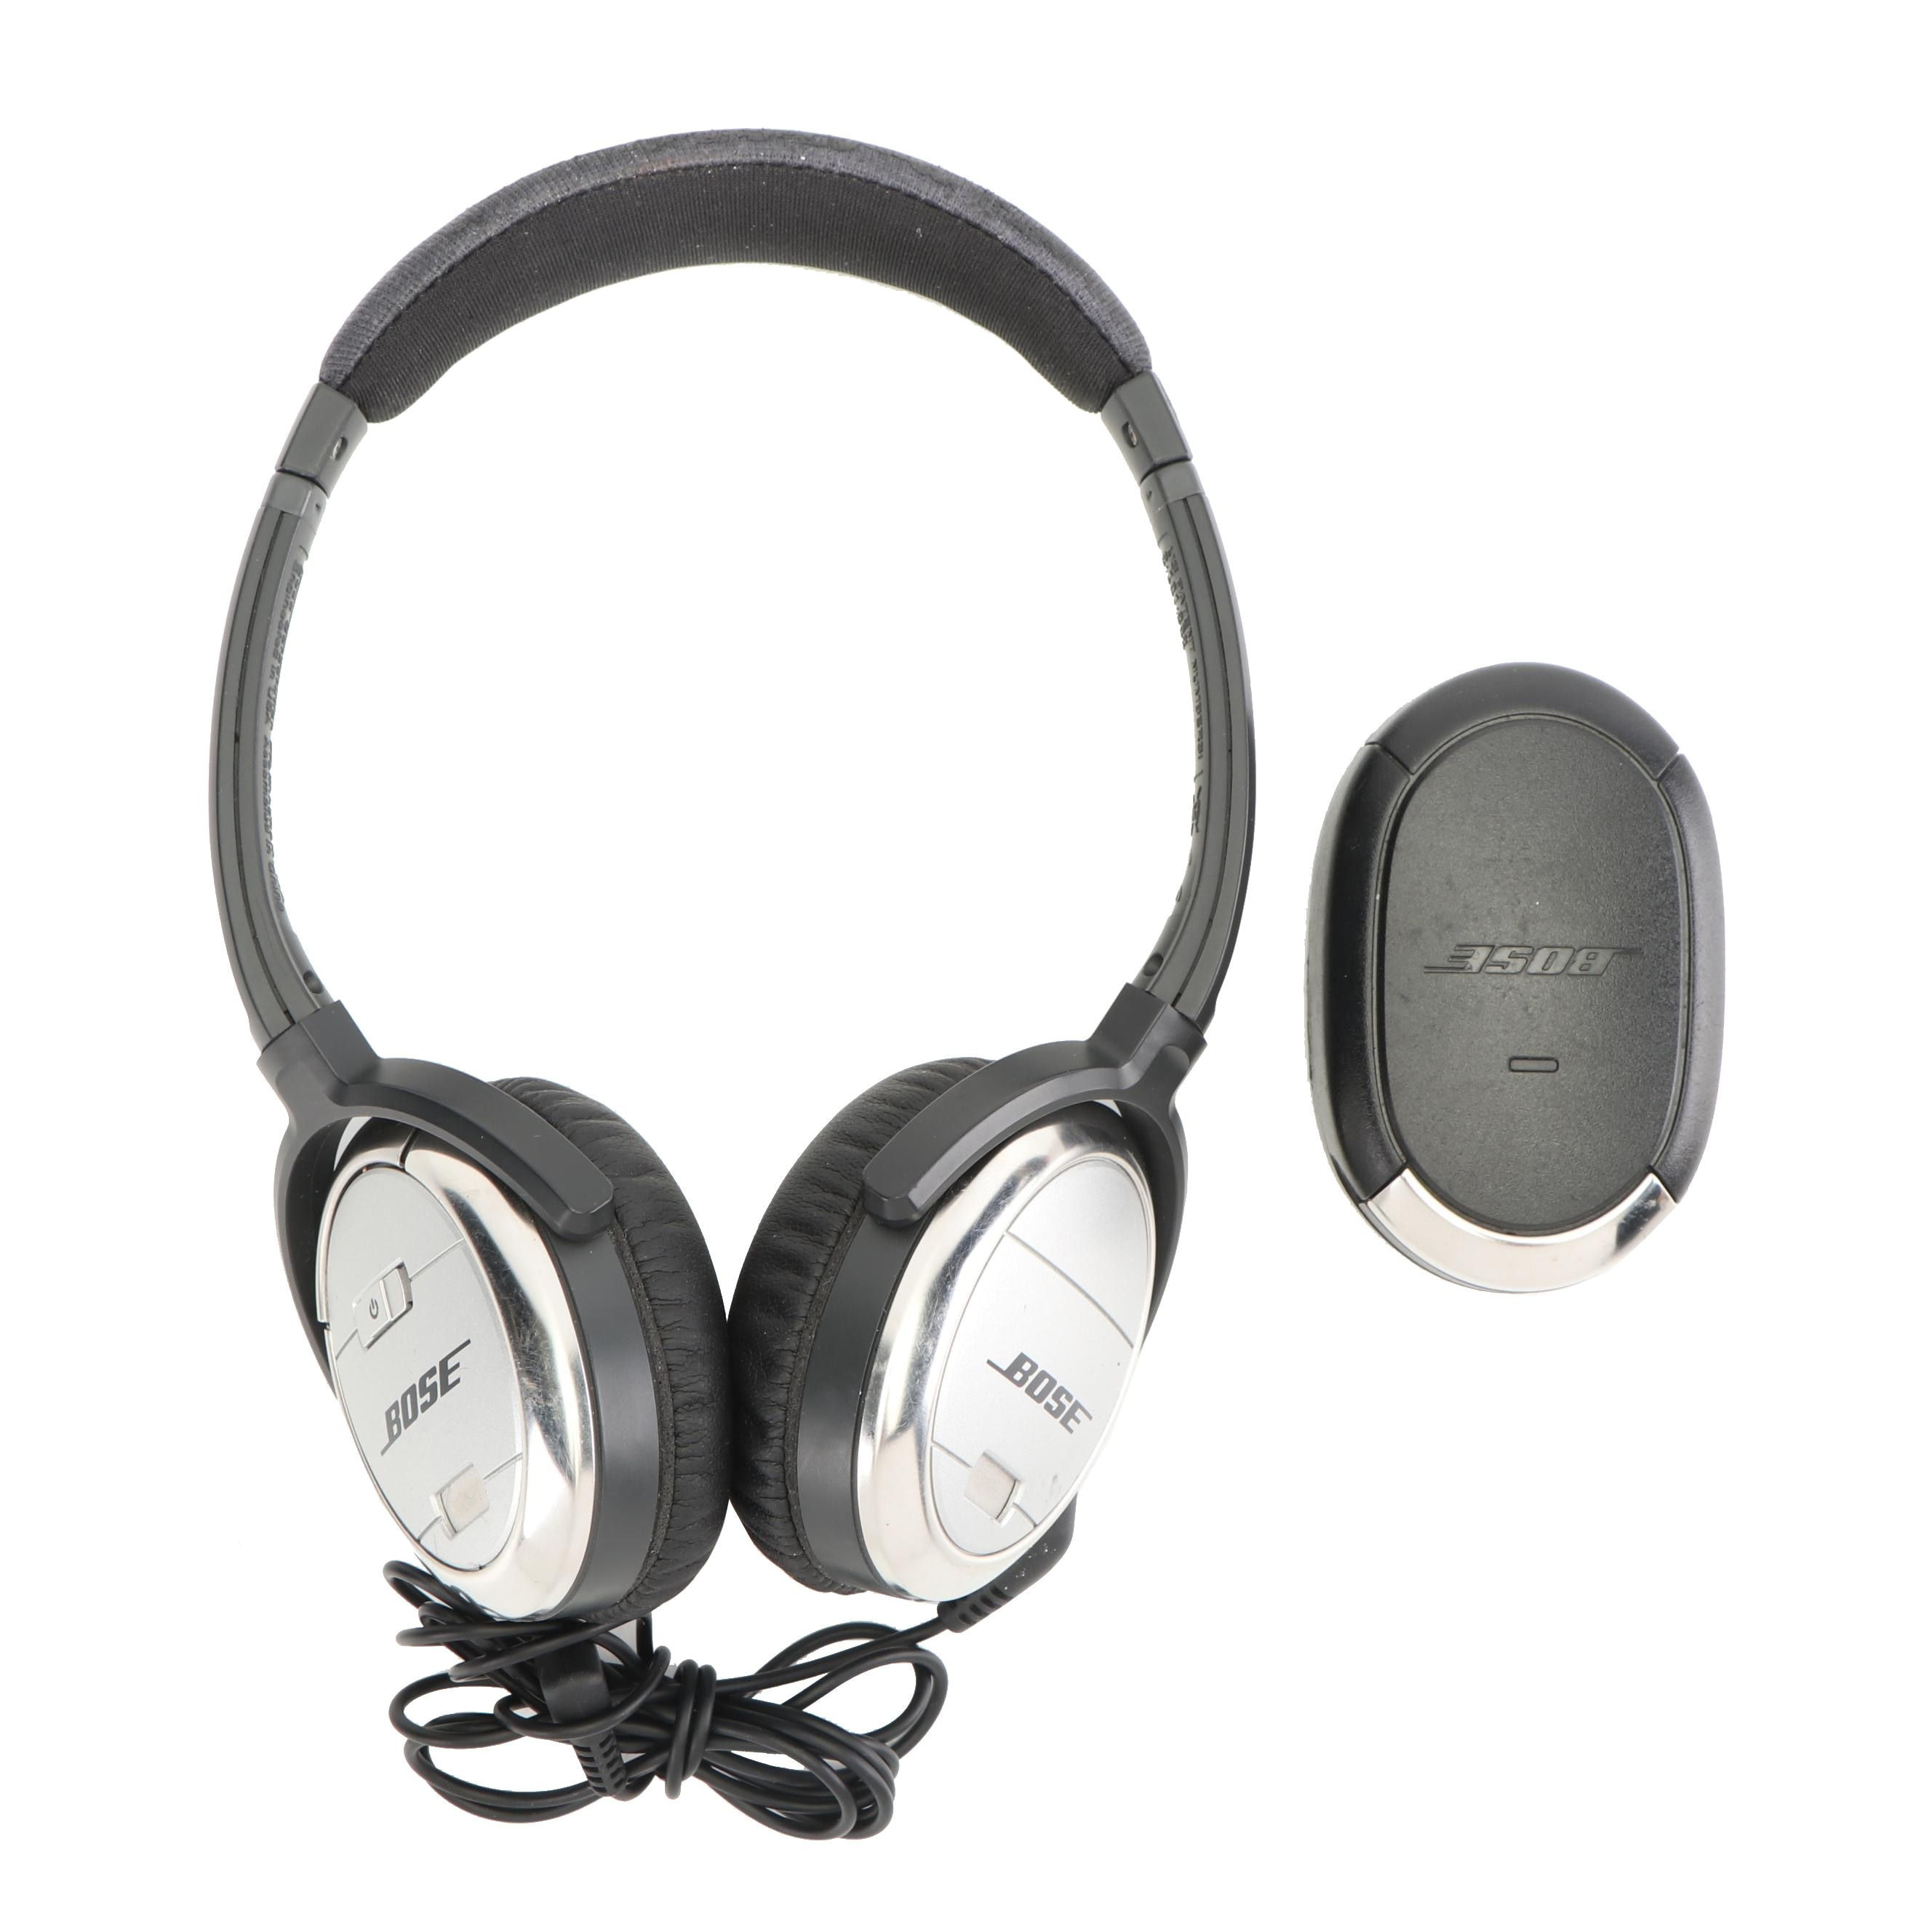 Bose QuietComfort 3 Acoustic Noise Cancelling Headphones with Battery Charger